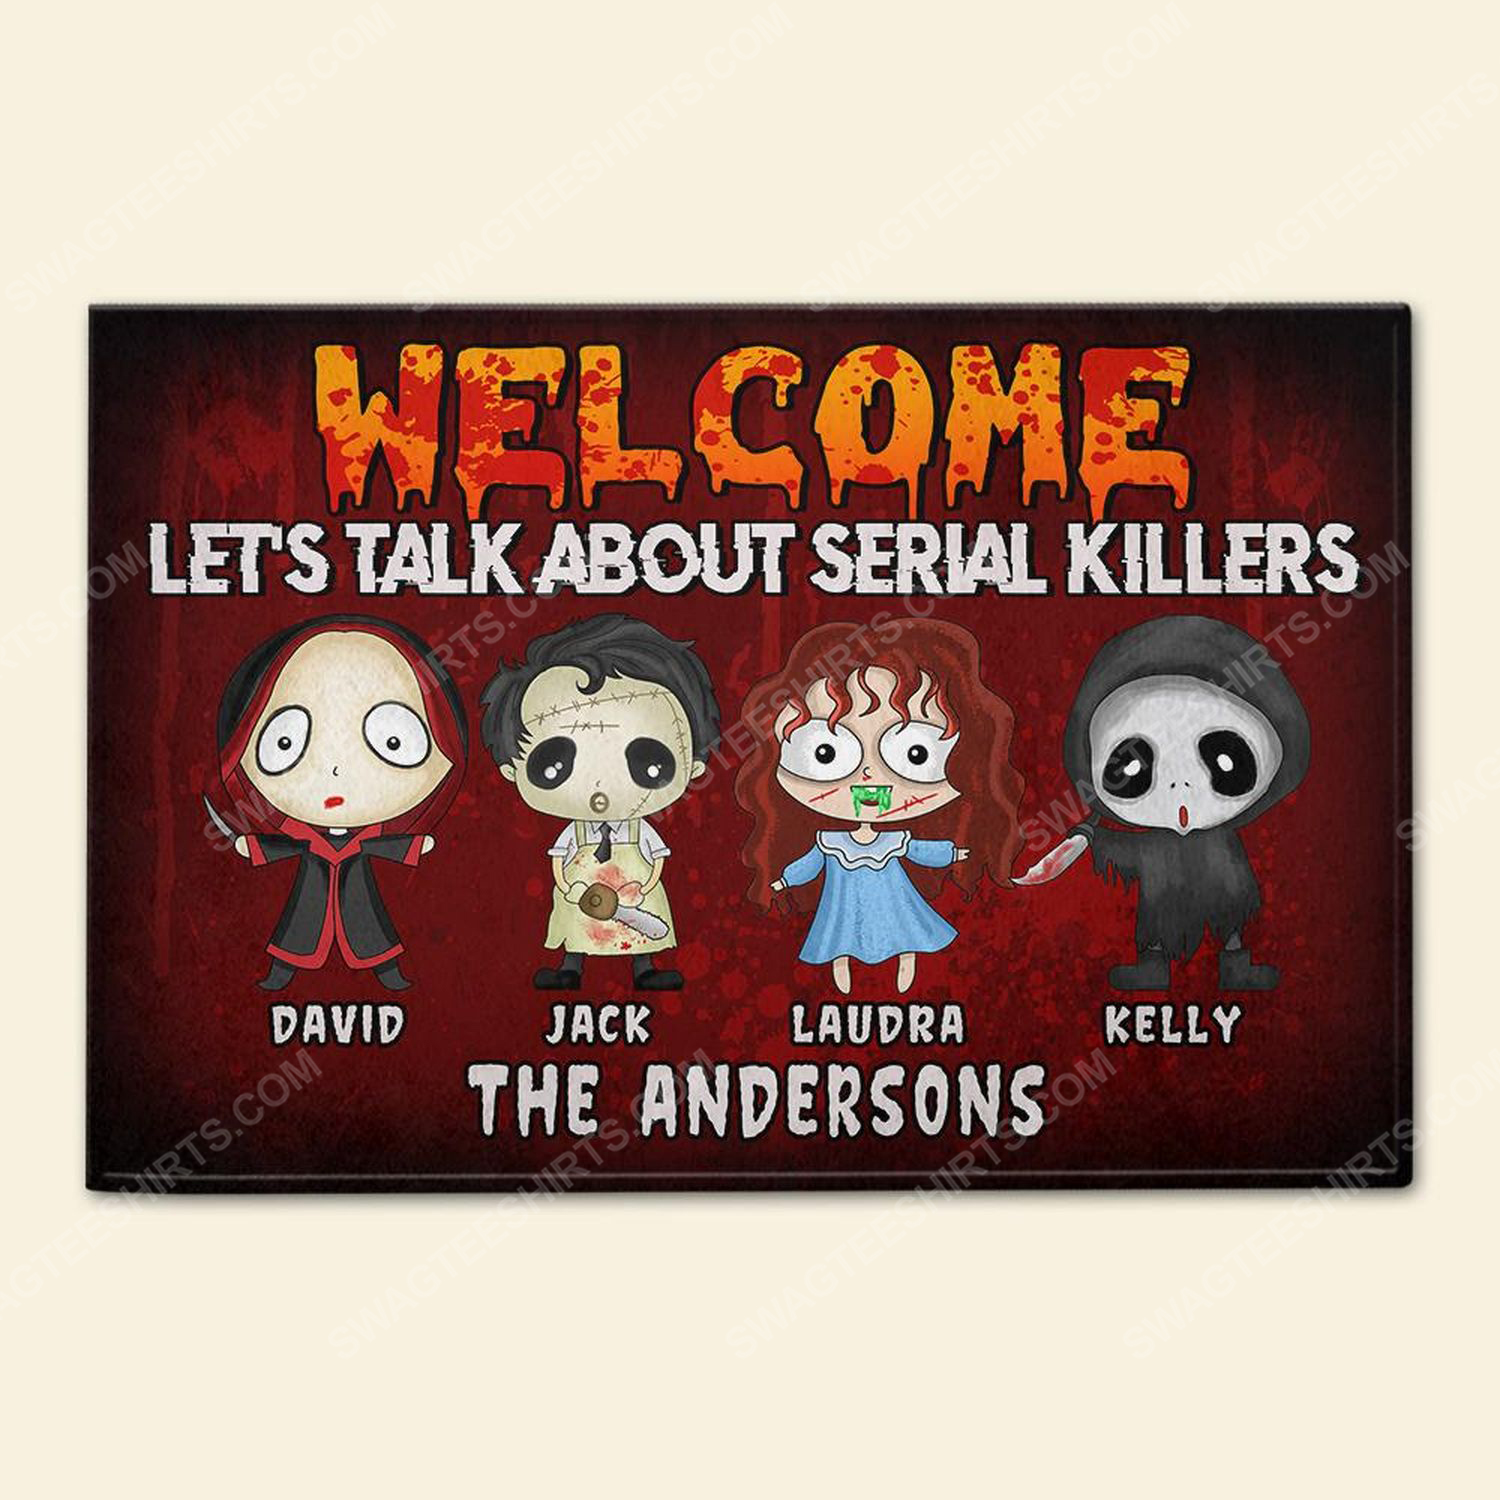 Custom halloween for family let's talk about serial killers doormat